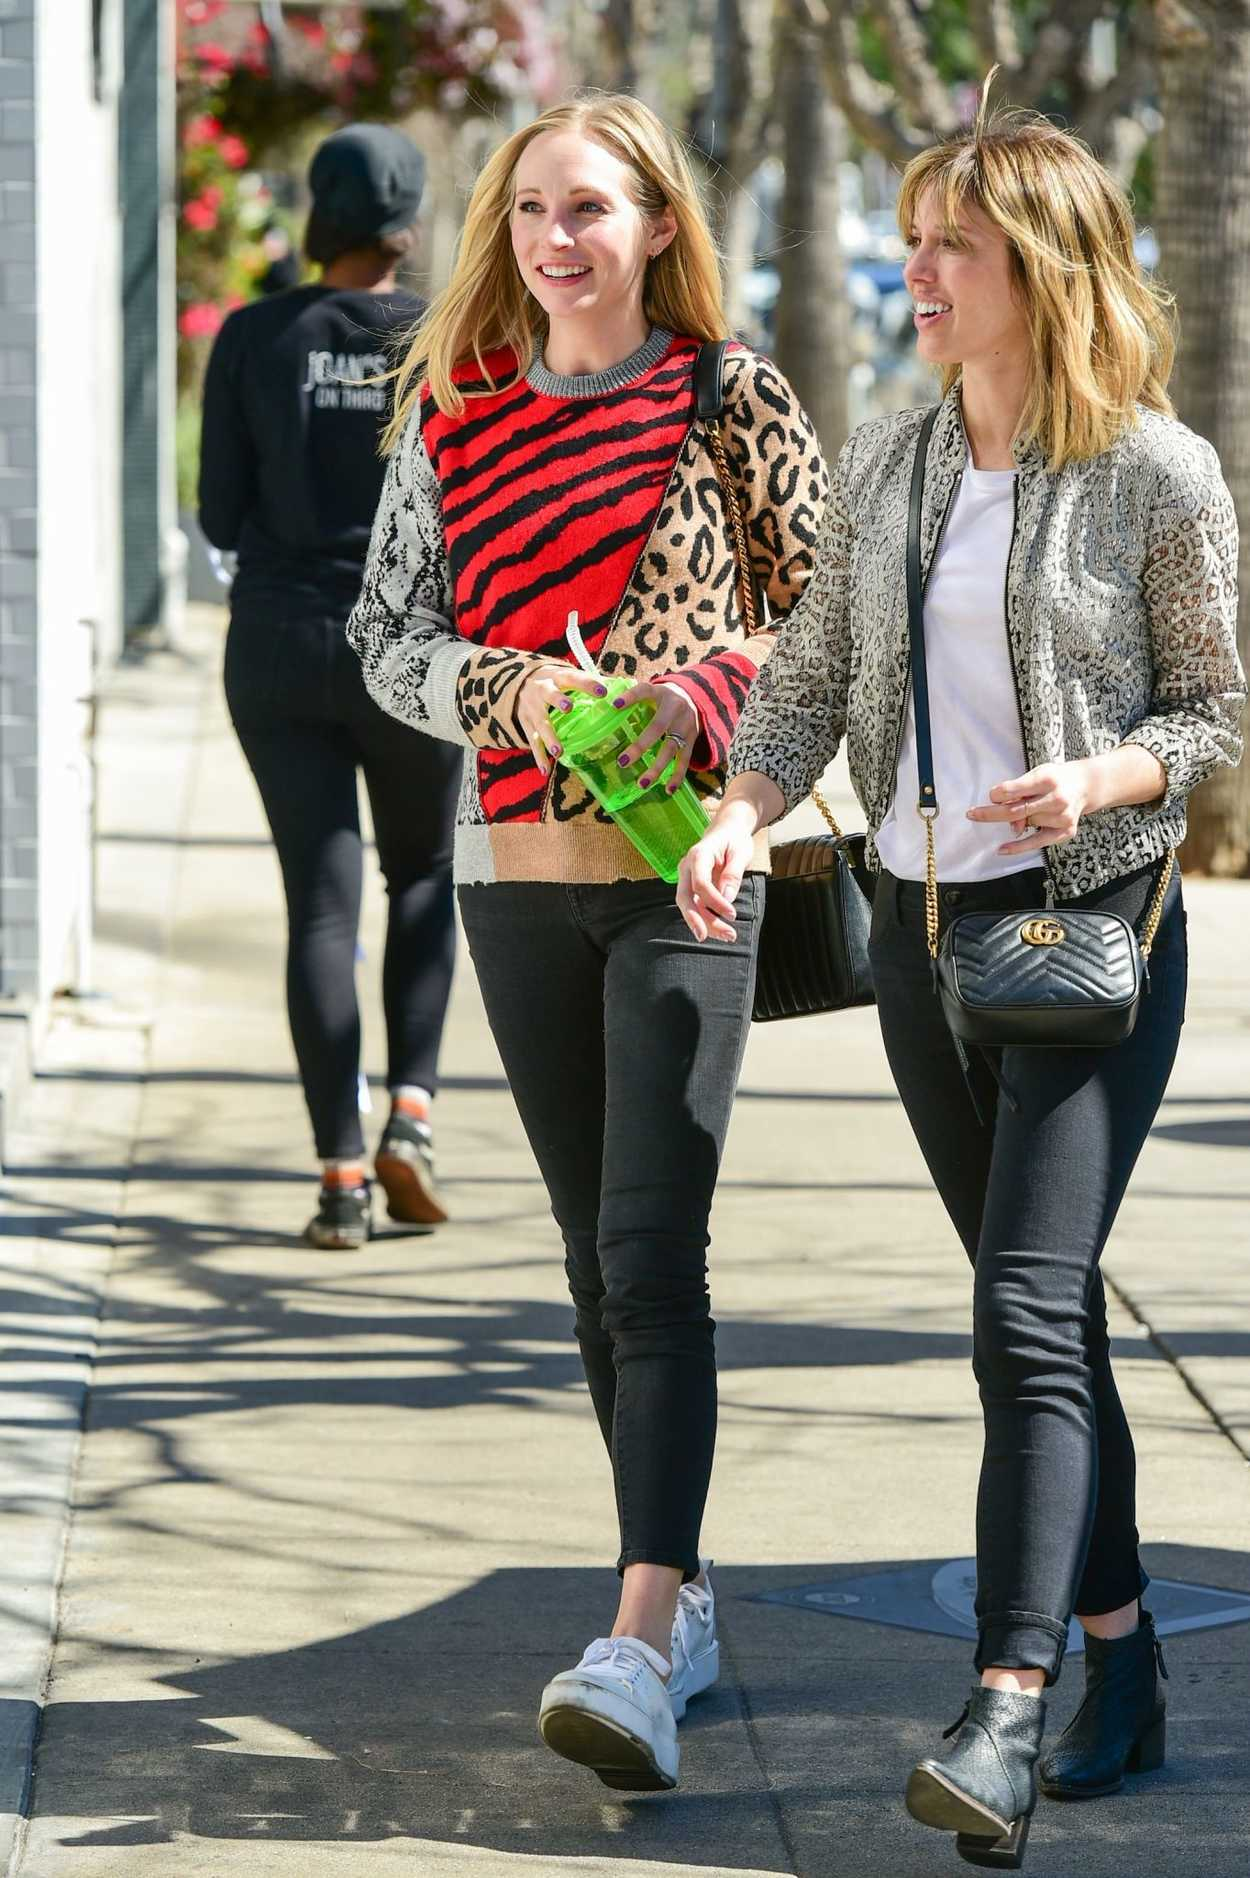 Candice King Was Seen Out In La 03 13 2019 Celebsla Com